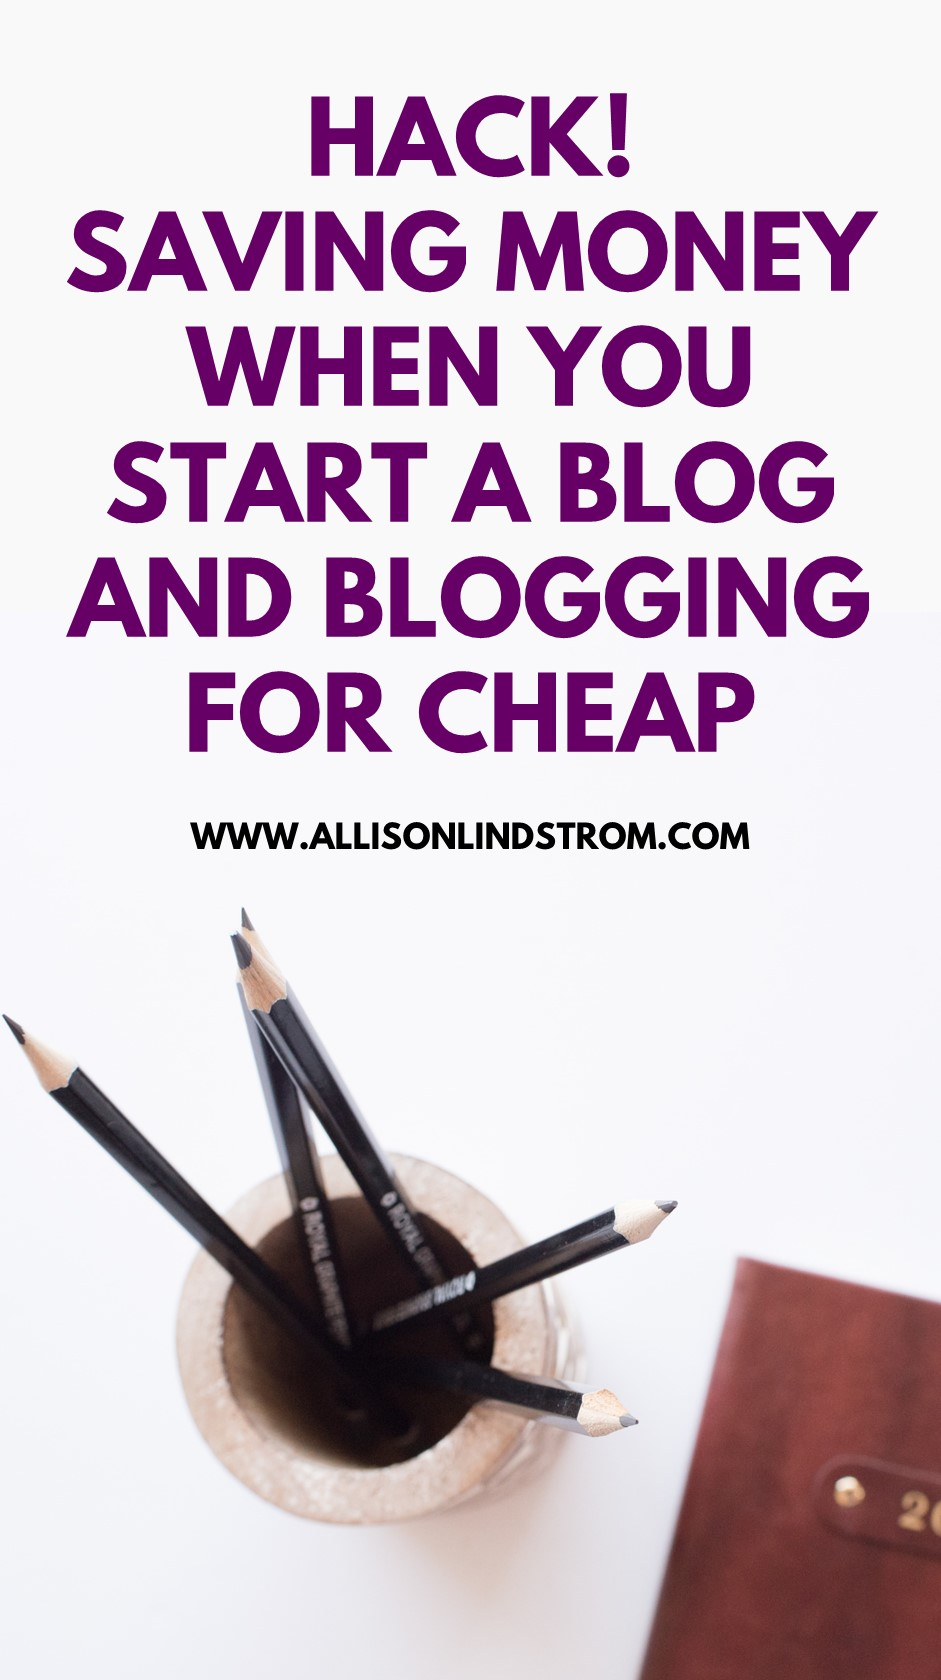 HACK! SAVING MONEY WHEN YOU START A BLOG ● BLOGGING FOR CHEAP--Looking for ways to save money as a new blogger? If there's one thing I'm a fan of, it's blogging for cheap…or as cheap as you possibly can when starting a blogging business! Here's a nifty hack for saving money on your blog expenses! ● HACK! SAVING MONEY WHEN YOU START A BLOG ● BLOGGING FOR CHEAP